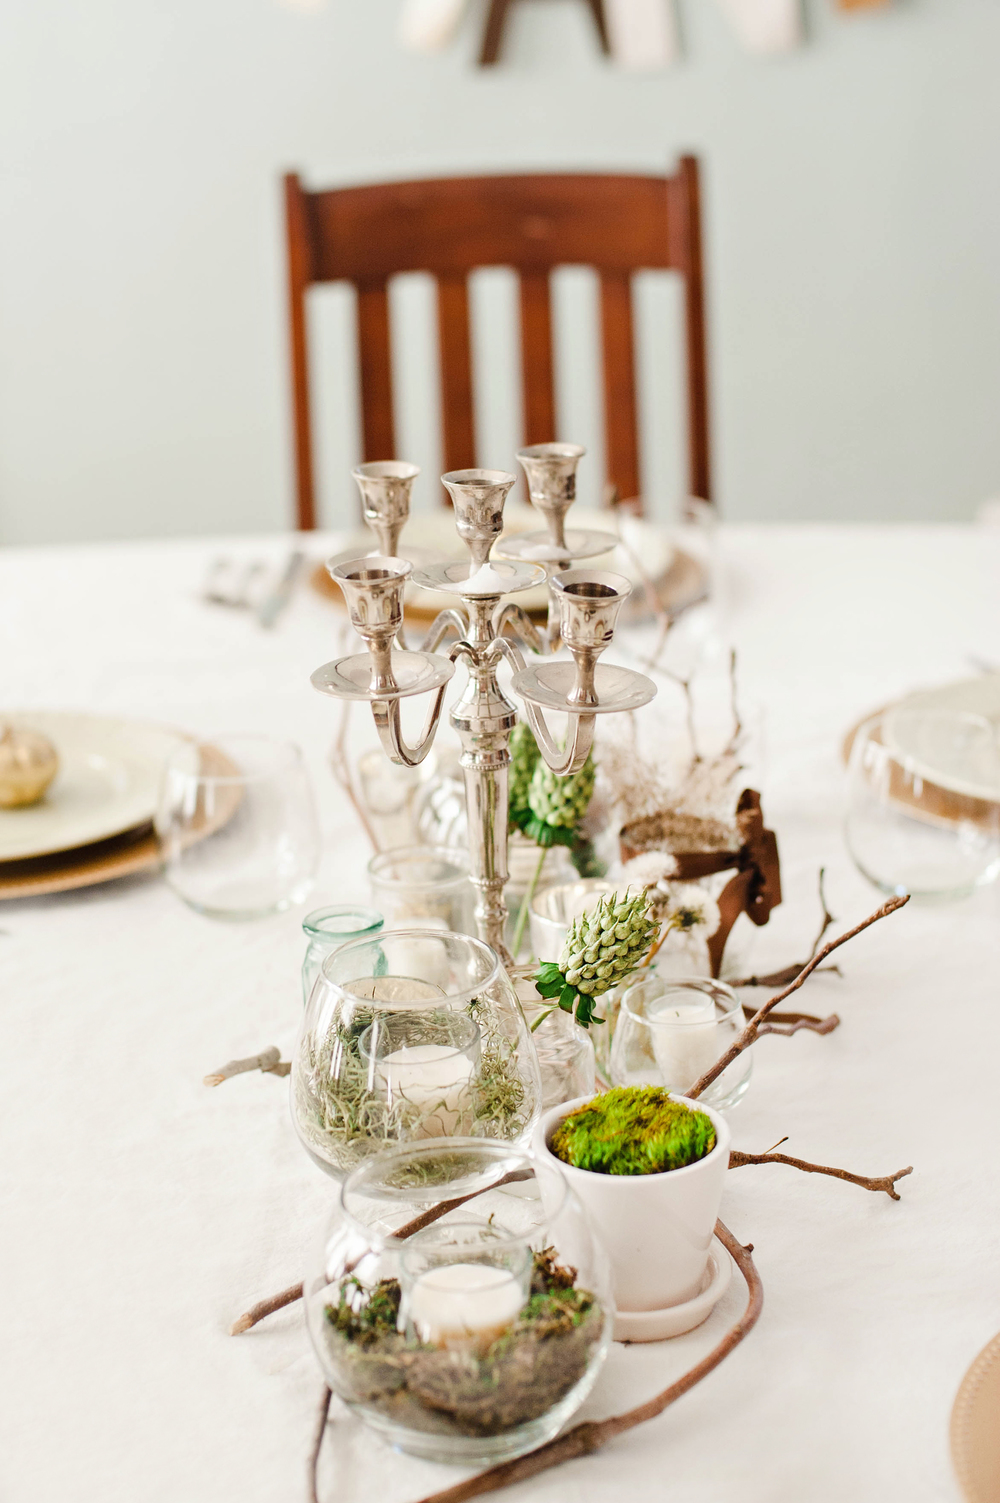 DIY Rustic & Chic Thanksgiving Table